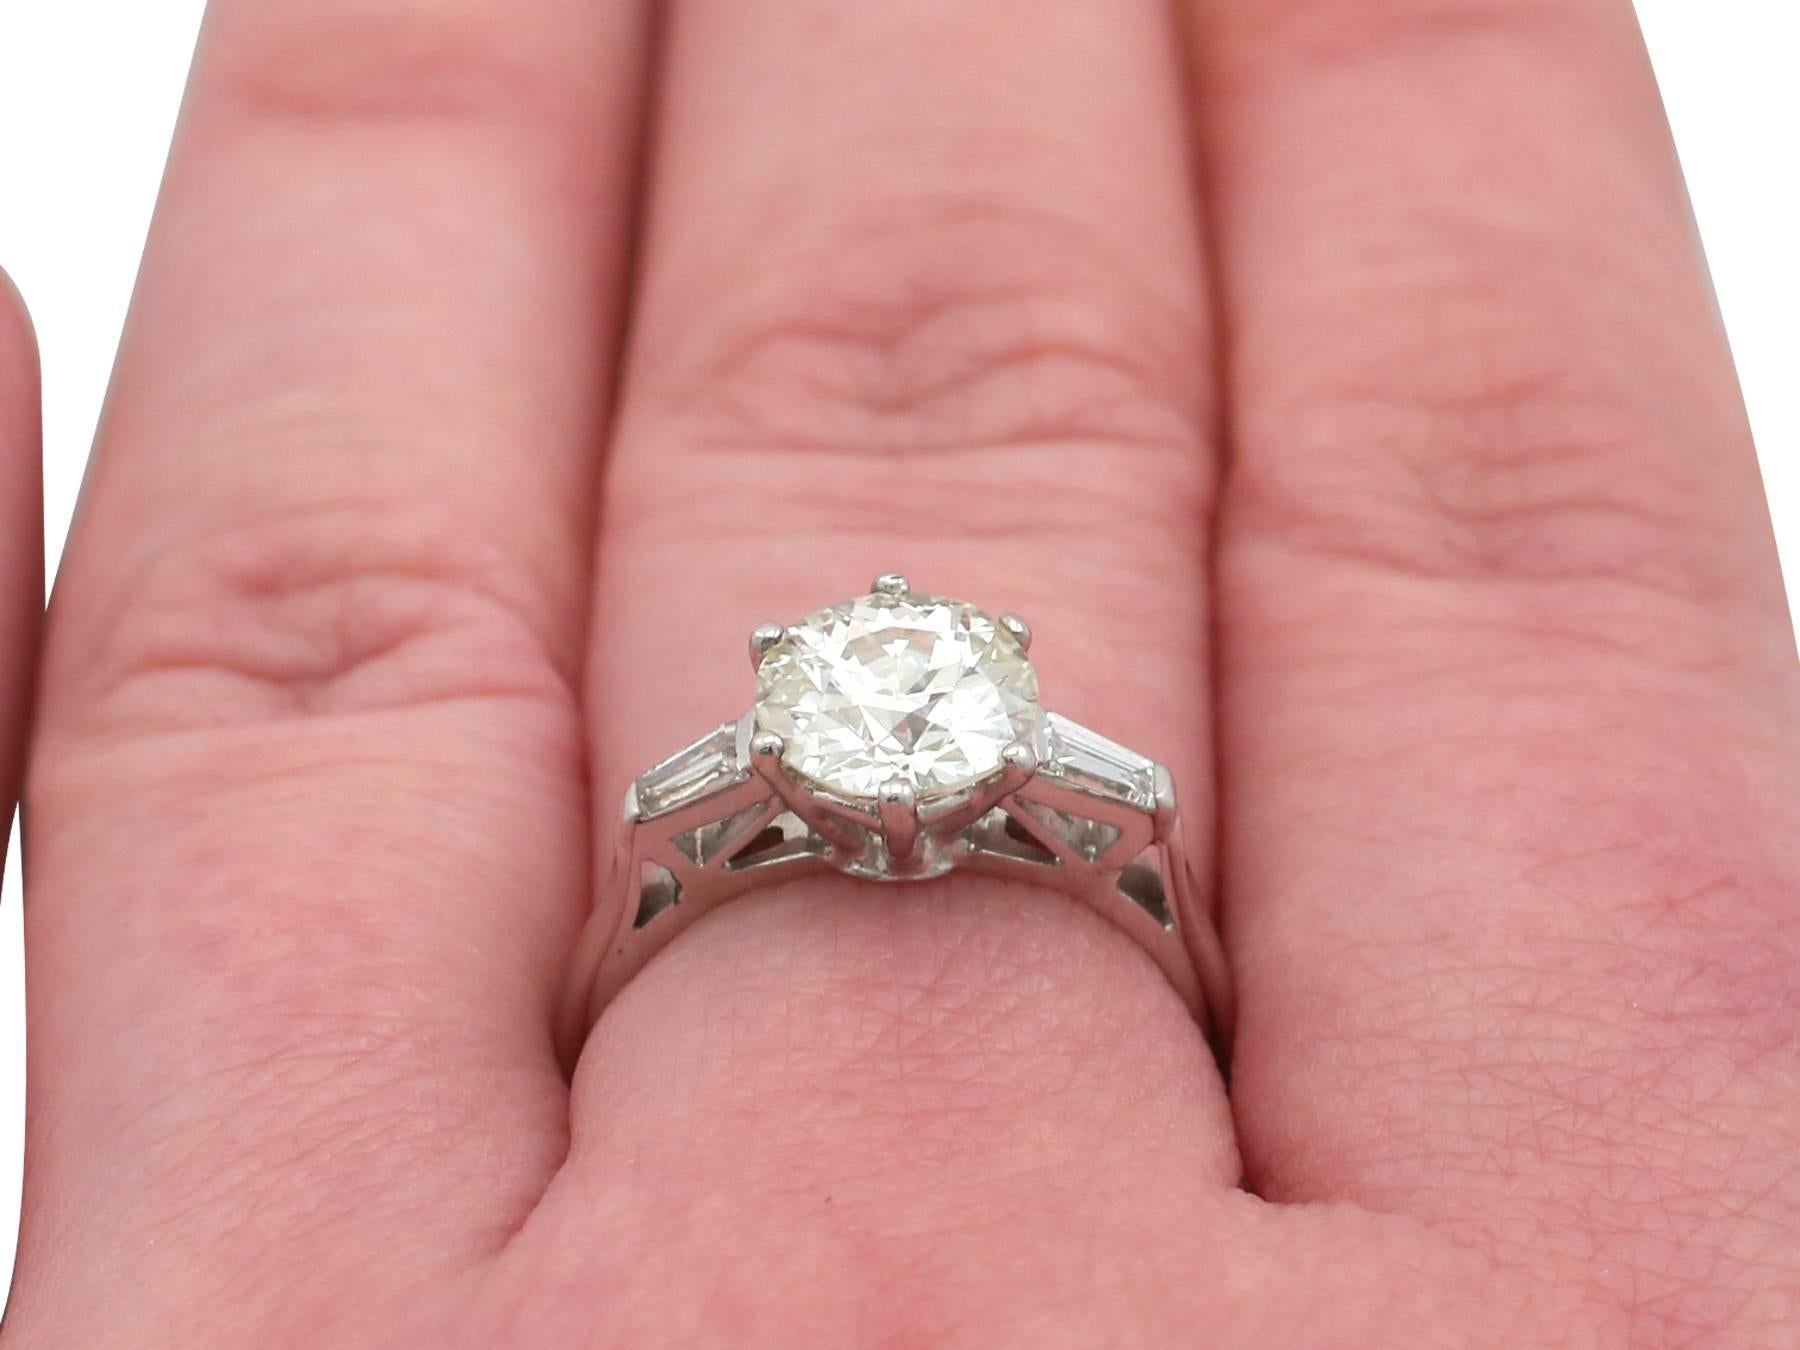 1920s 2.04 Carat Diamond and White Gold Solitaire Engagement Ring ...